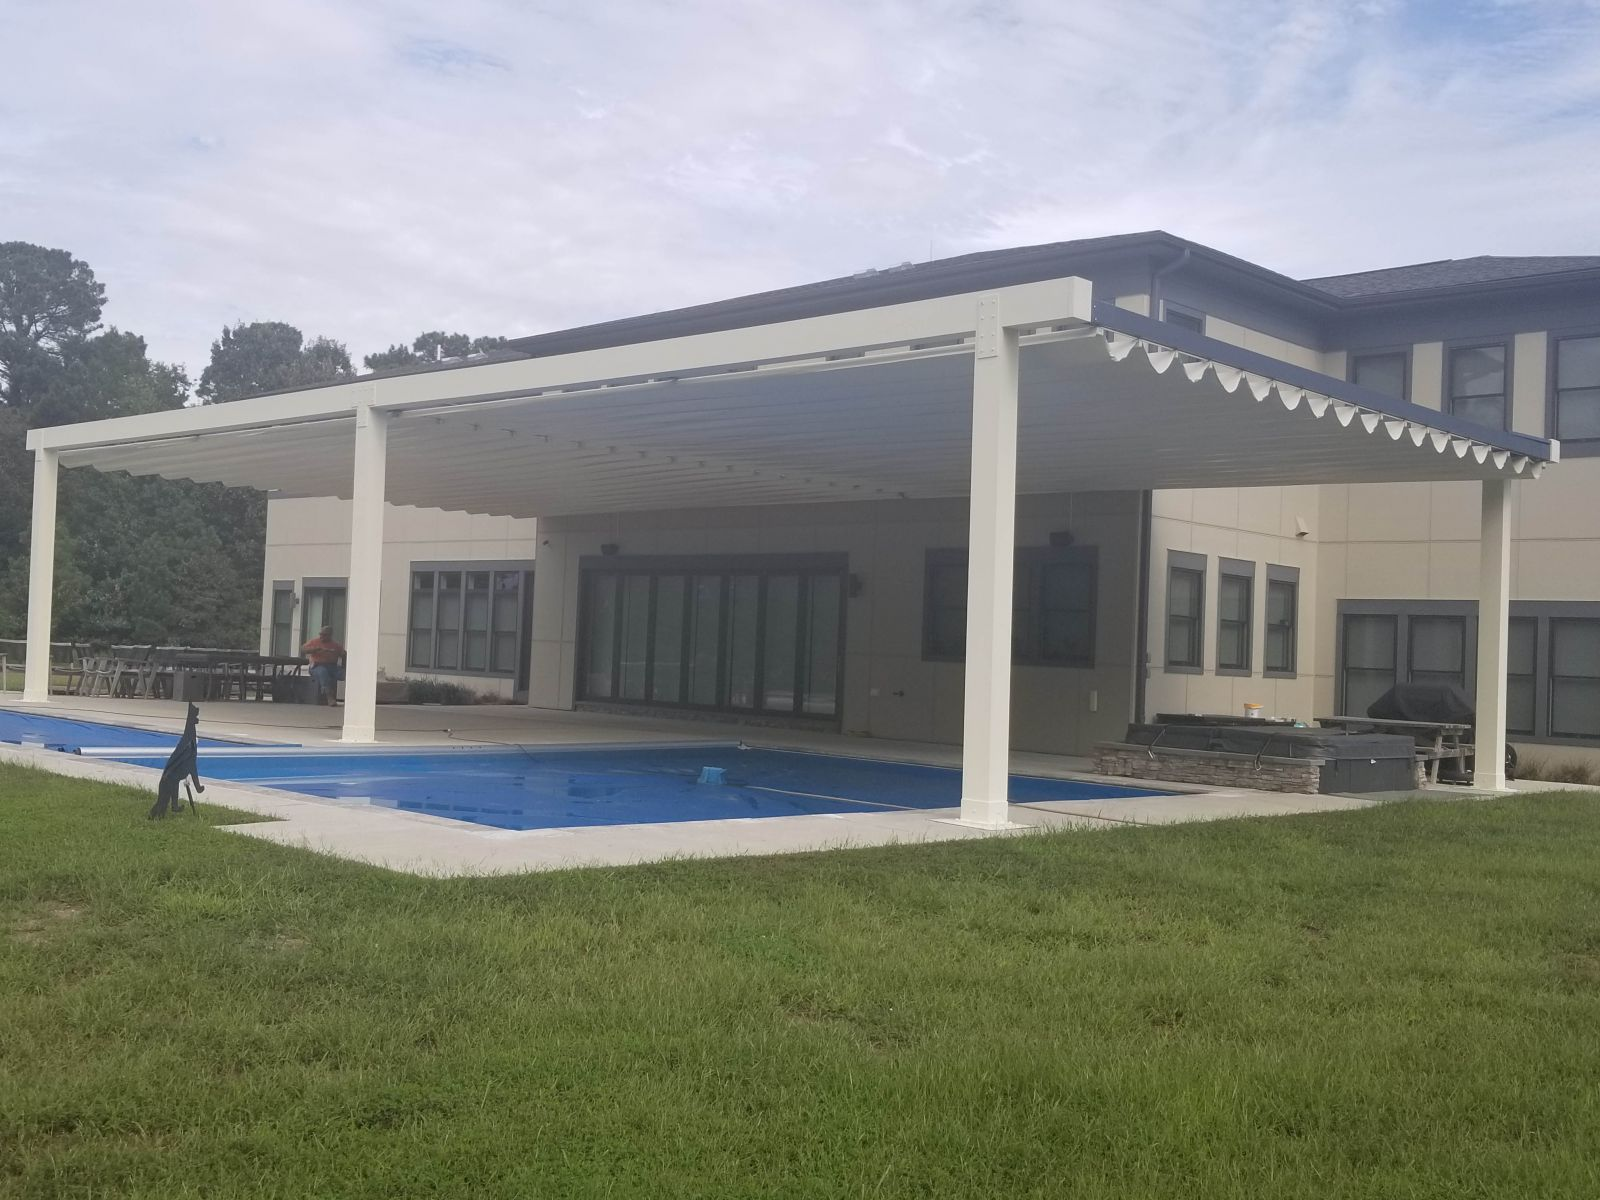 Tecnic One Pergola over Pool BY Sunair3.jpg